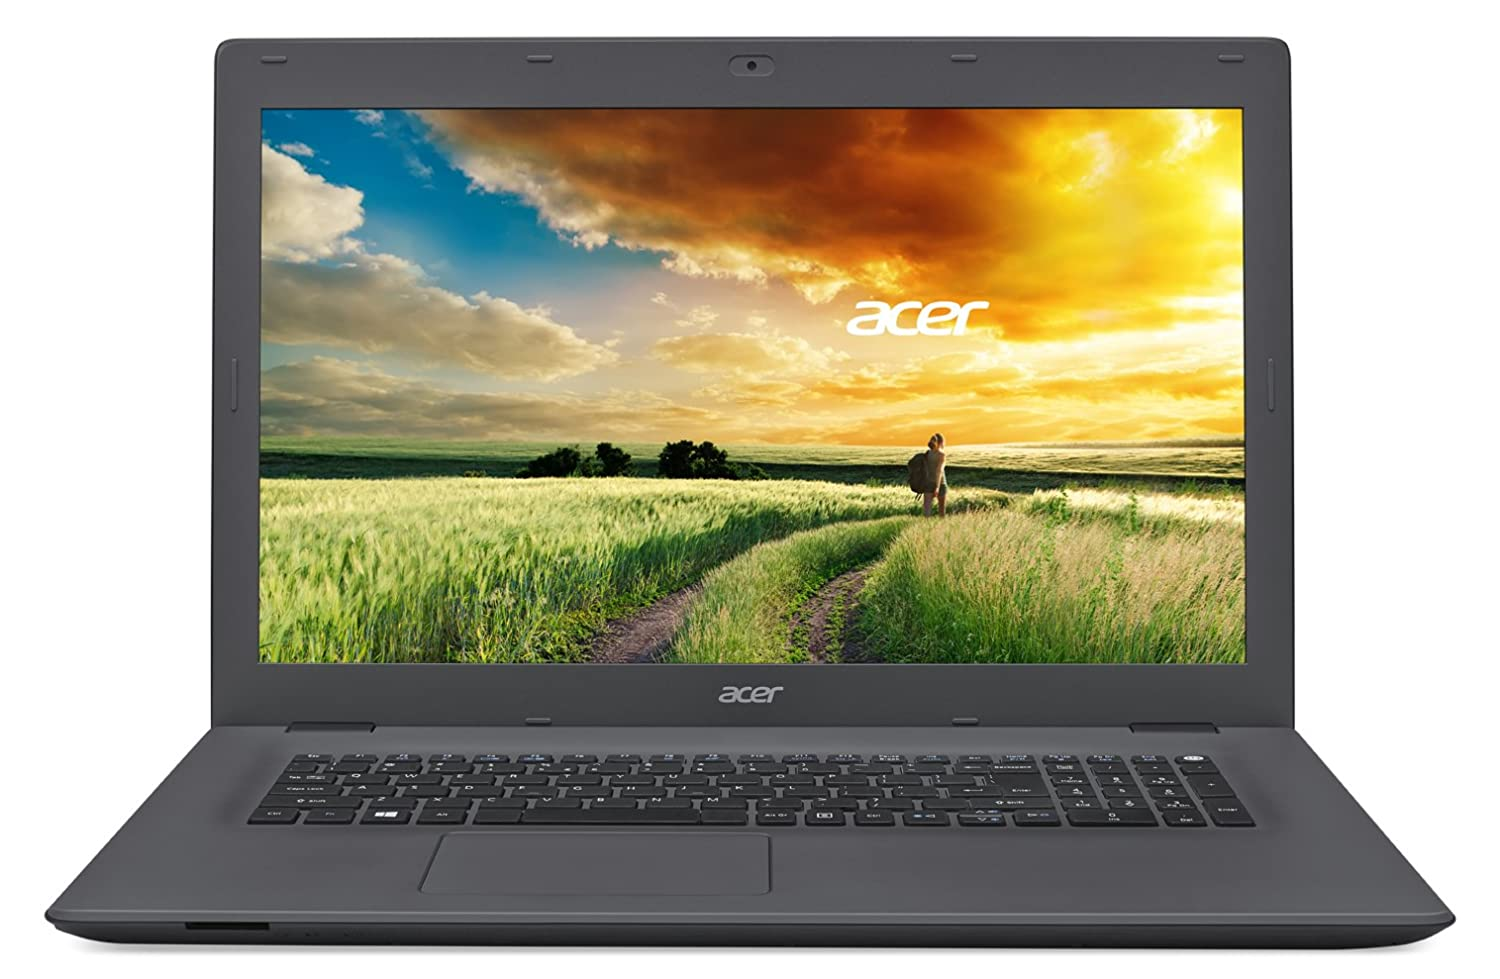 Acer Aspire E 17 E5-772G-52Q7 17.3-inch Full HD Notebook - Charcoal Gray (Windows 10)